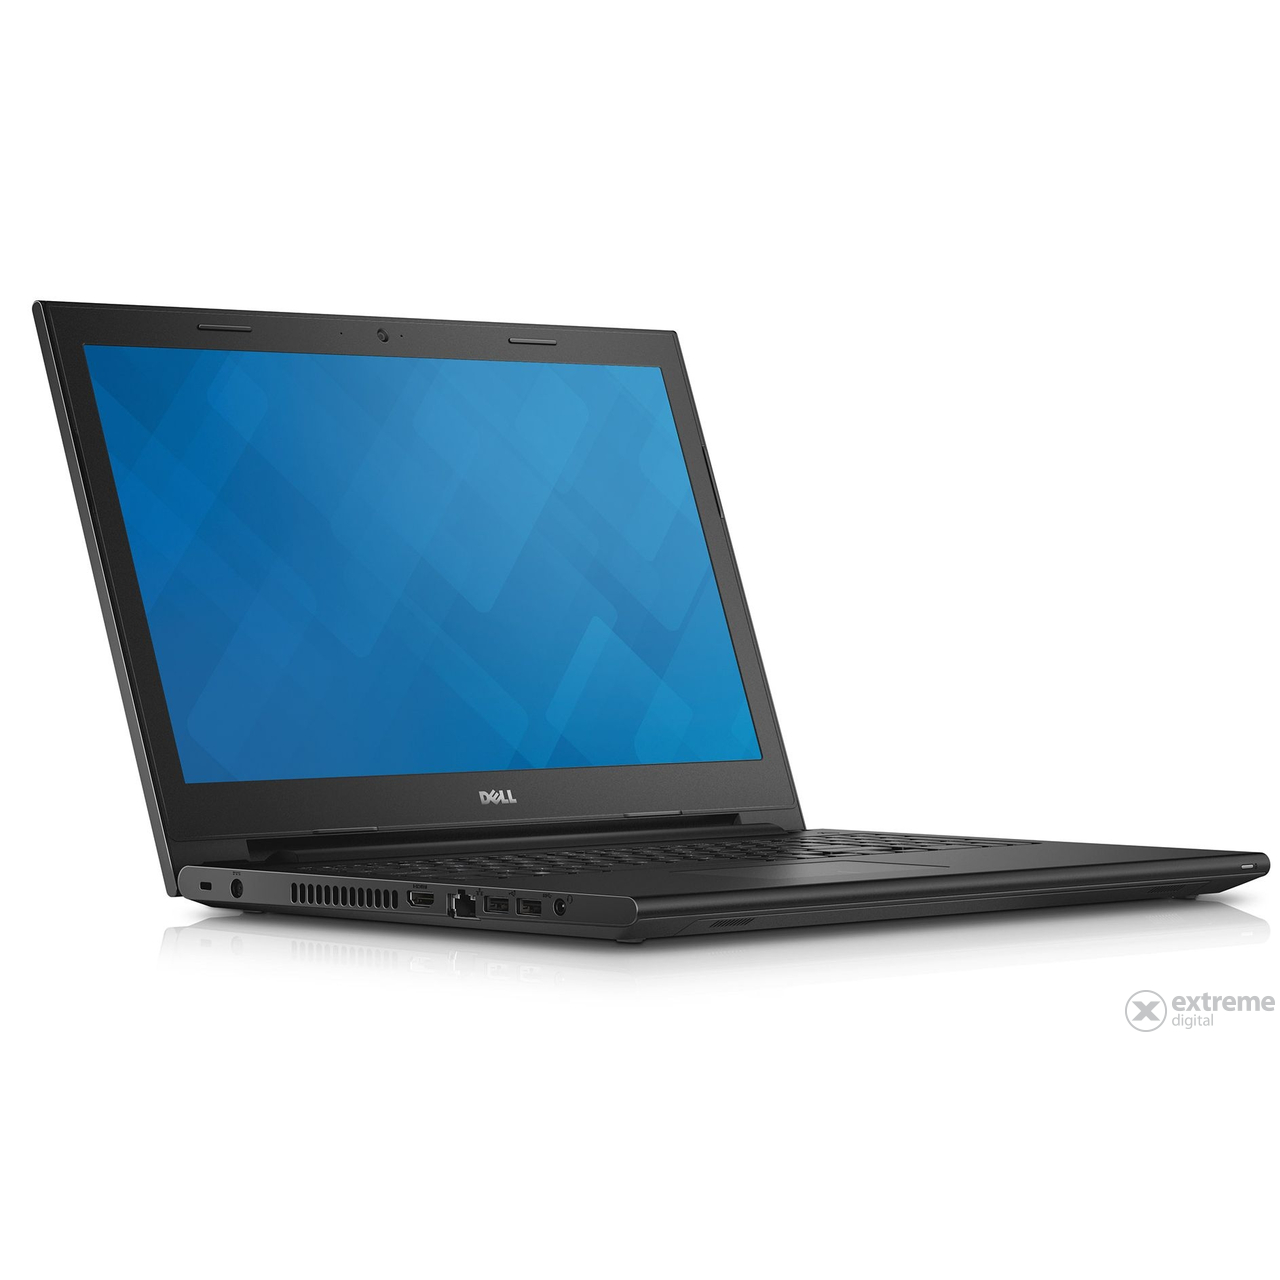 dell-inspiron-3541-16-notebook-windosws-8-1-fekete_b8b701a2.jpg